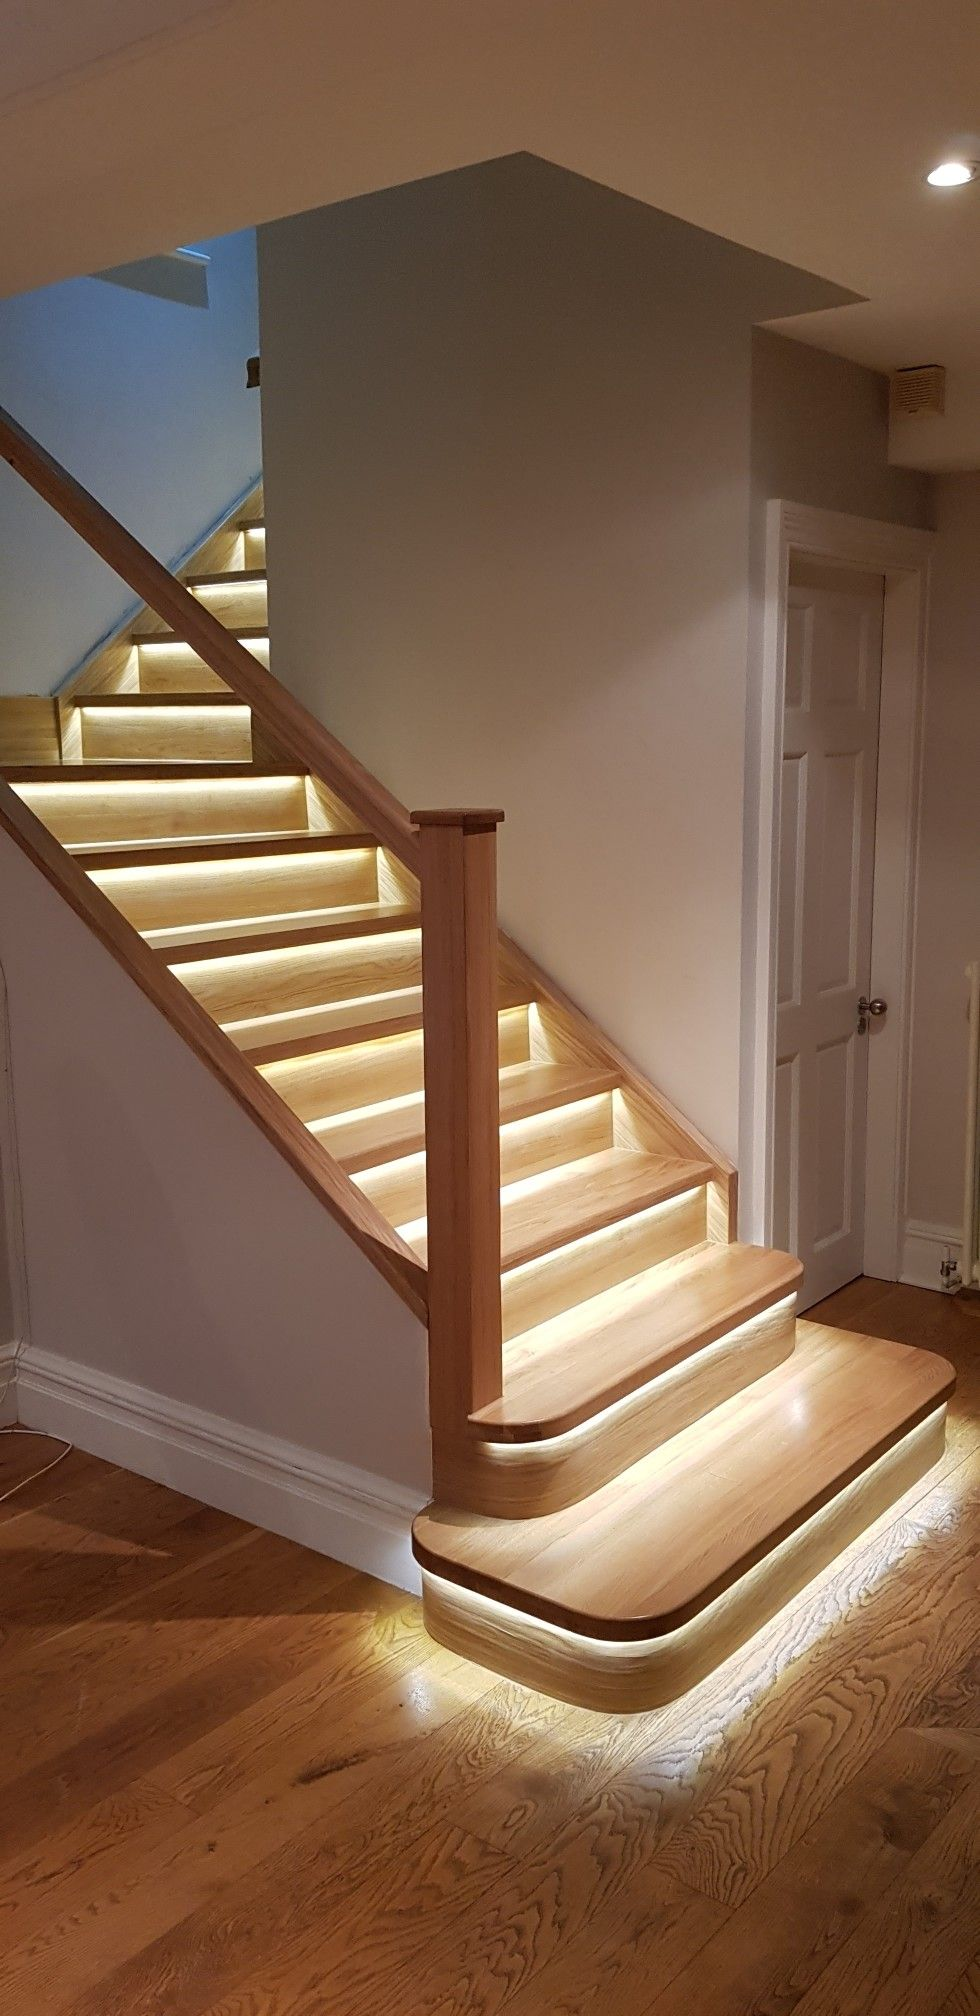 Basement Stair Ceiling Lighting: Pin By K Lowell On Basement Stairs In 2019